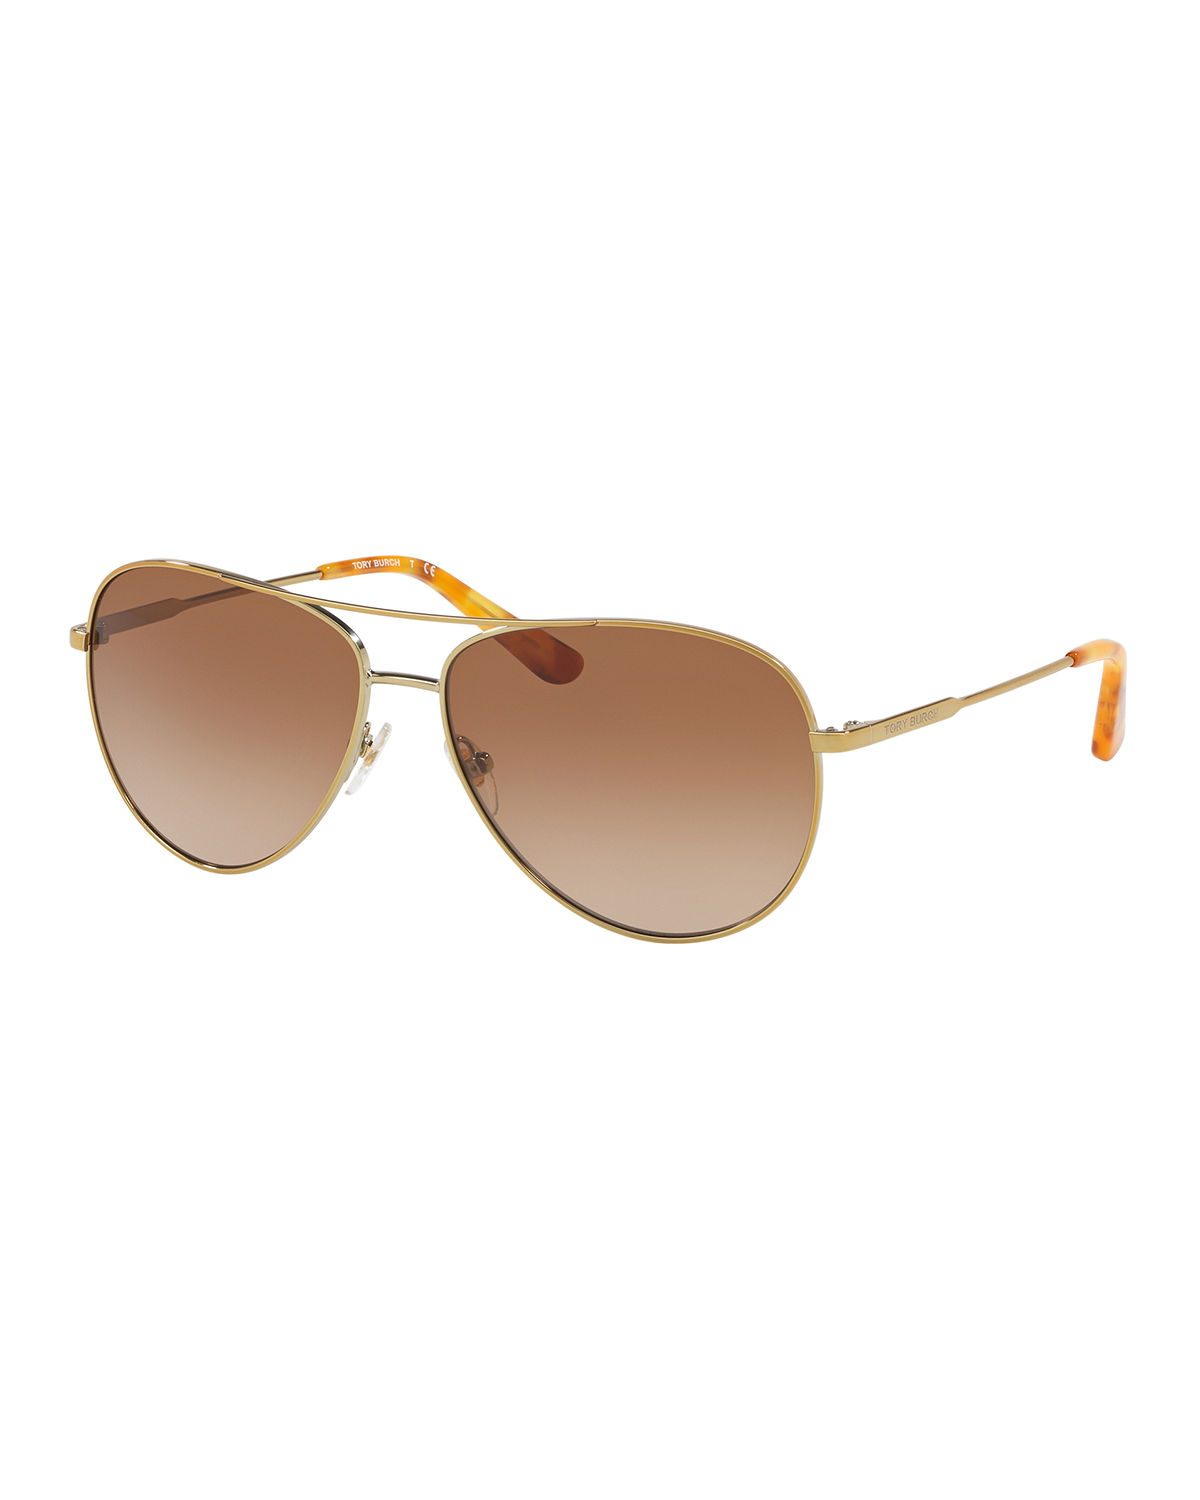 aa15cfd8887b Tory Burch Mirrored Aviator Metal Sunglasses